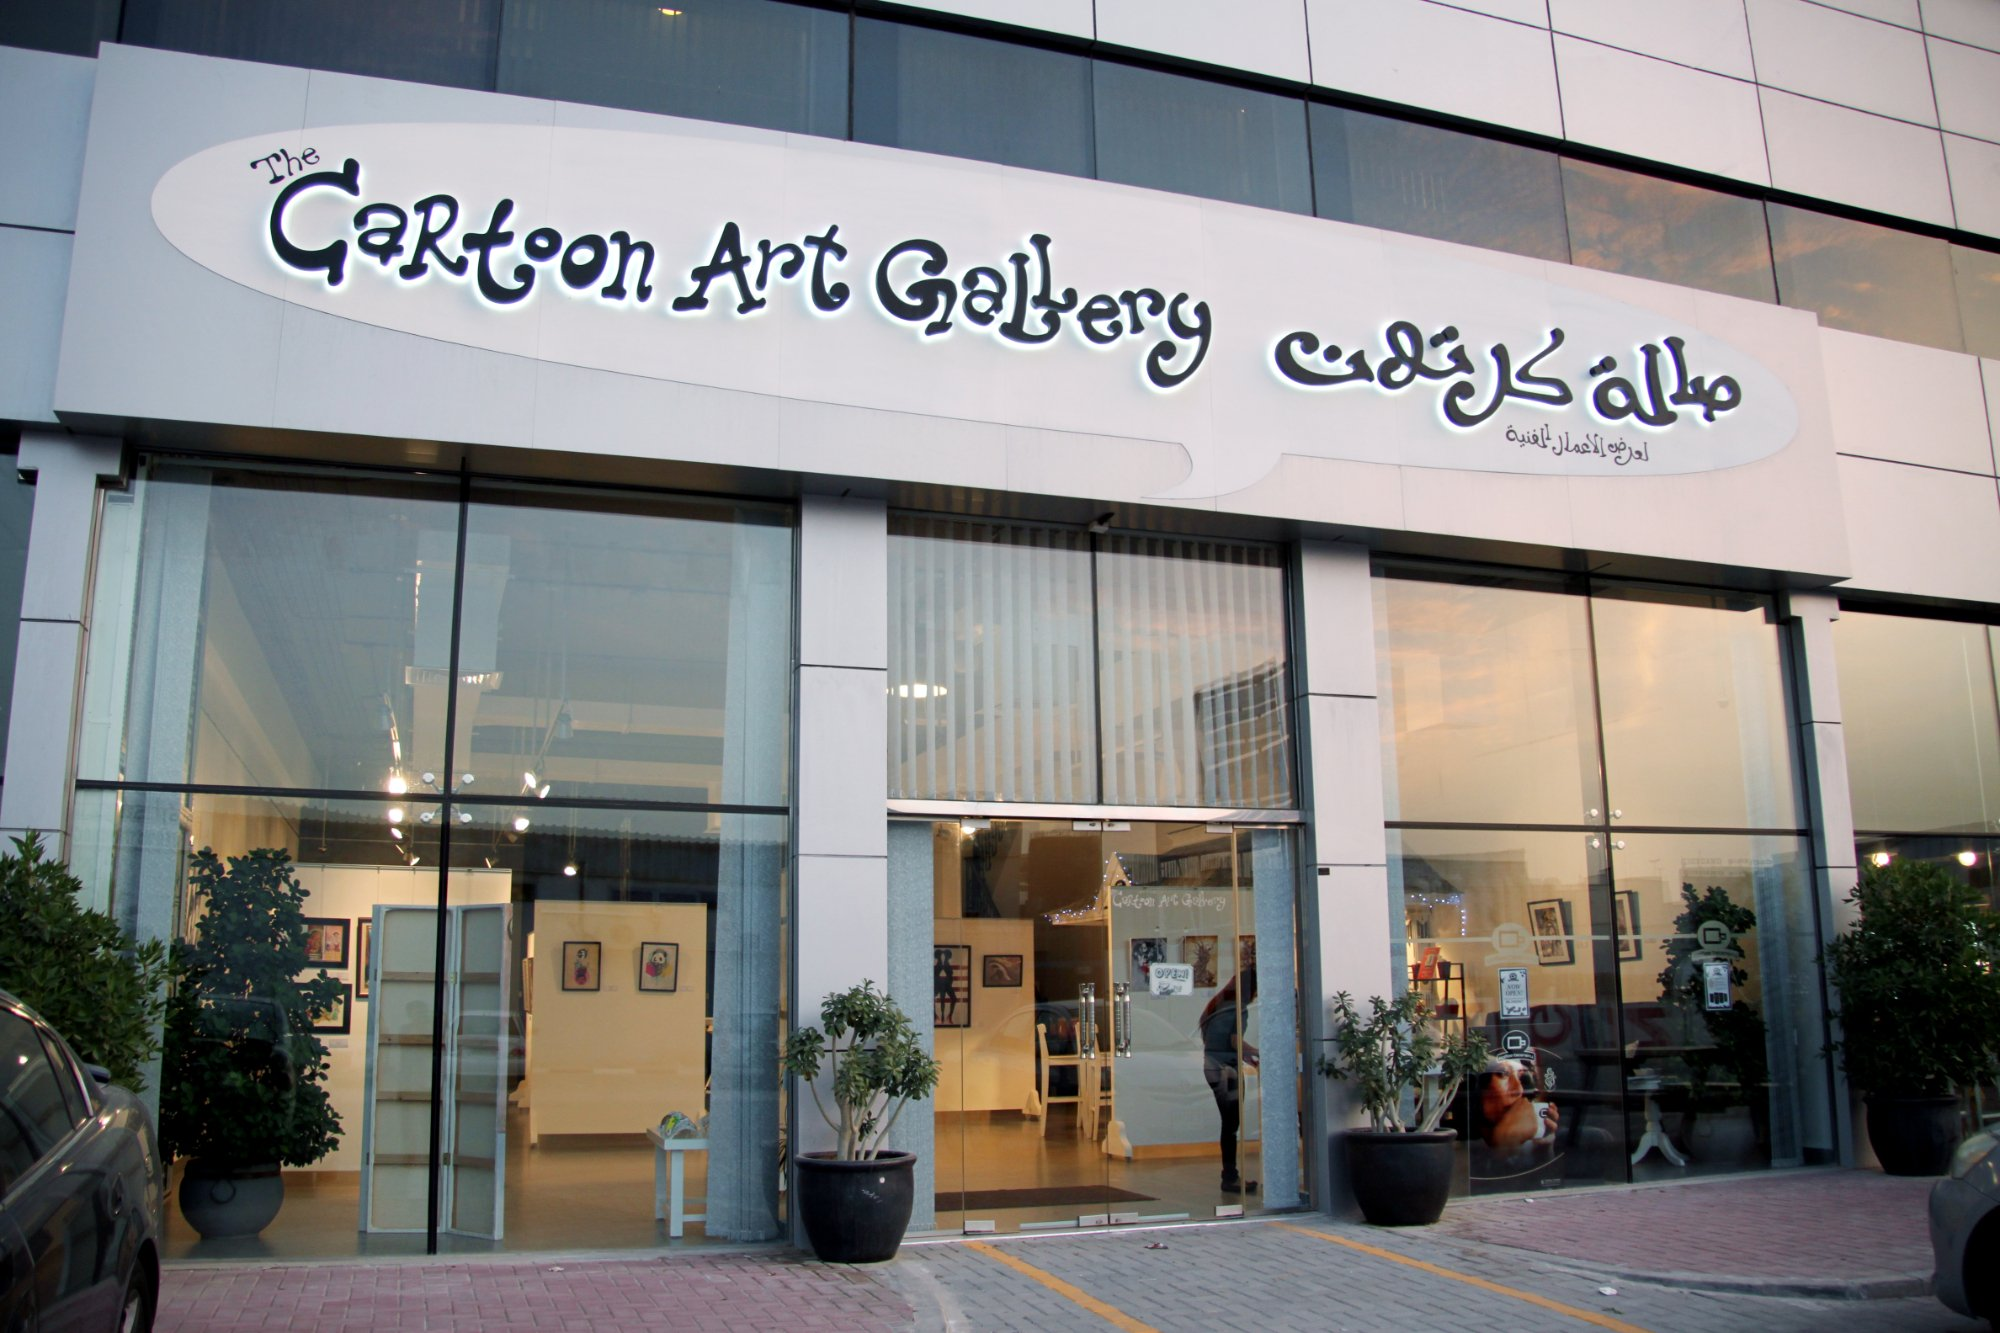 Cartoon Art Gallery Dubai, The Cartoon Art Gallery (Dubai, Uni Emirat Arab) - Review